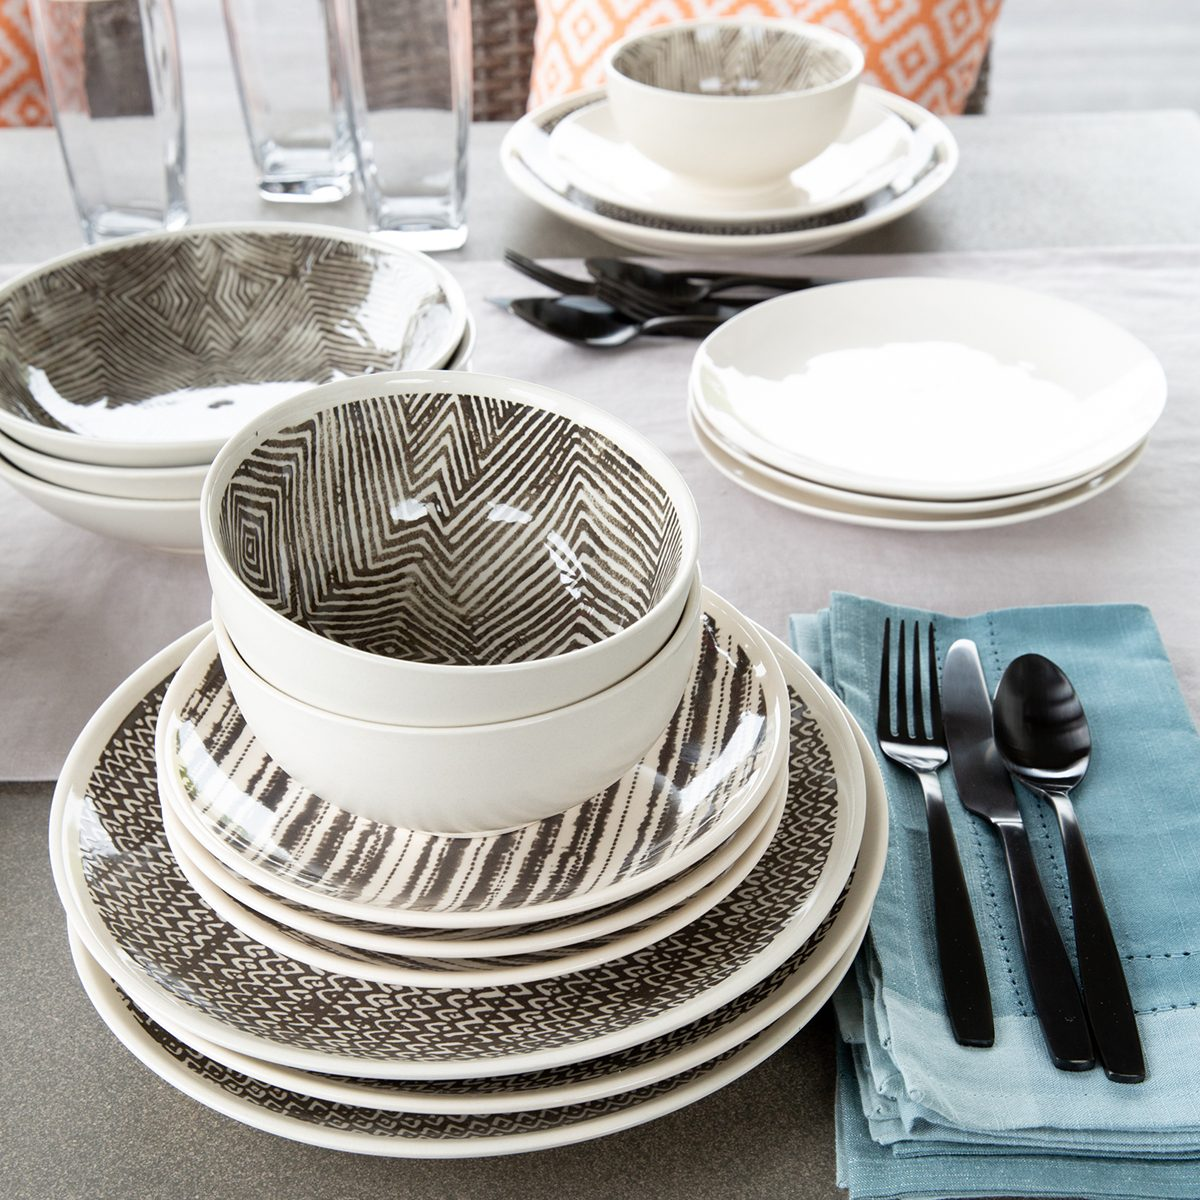 deck, bowl, plates, silverware